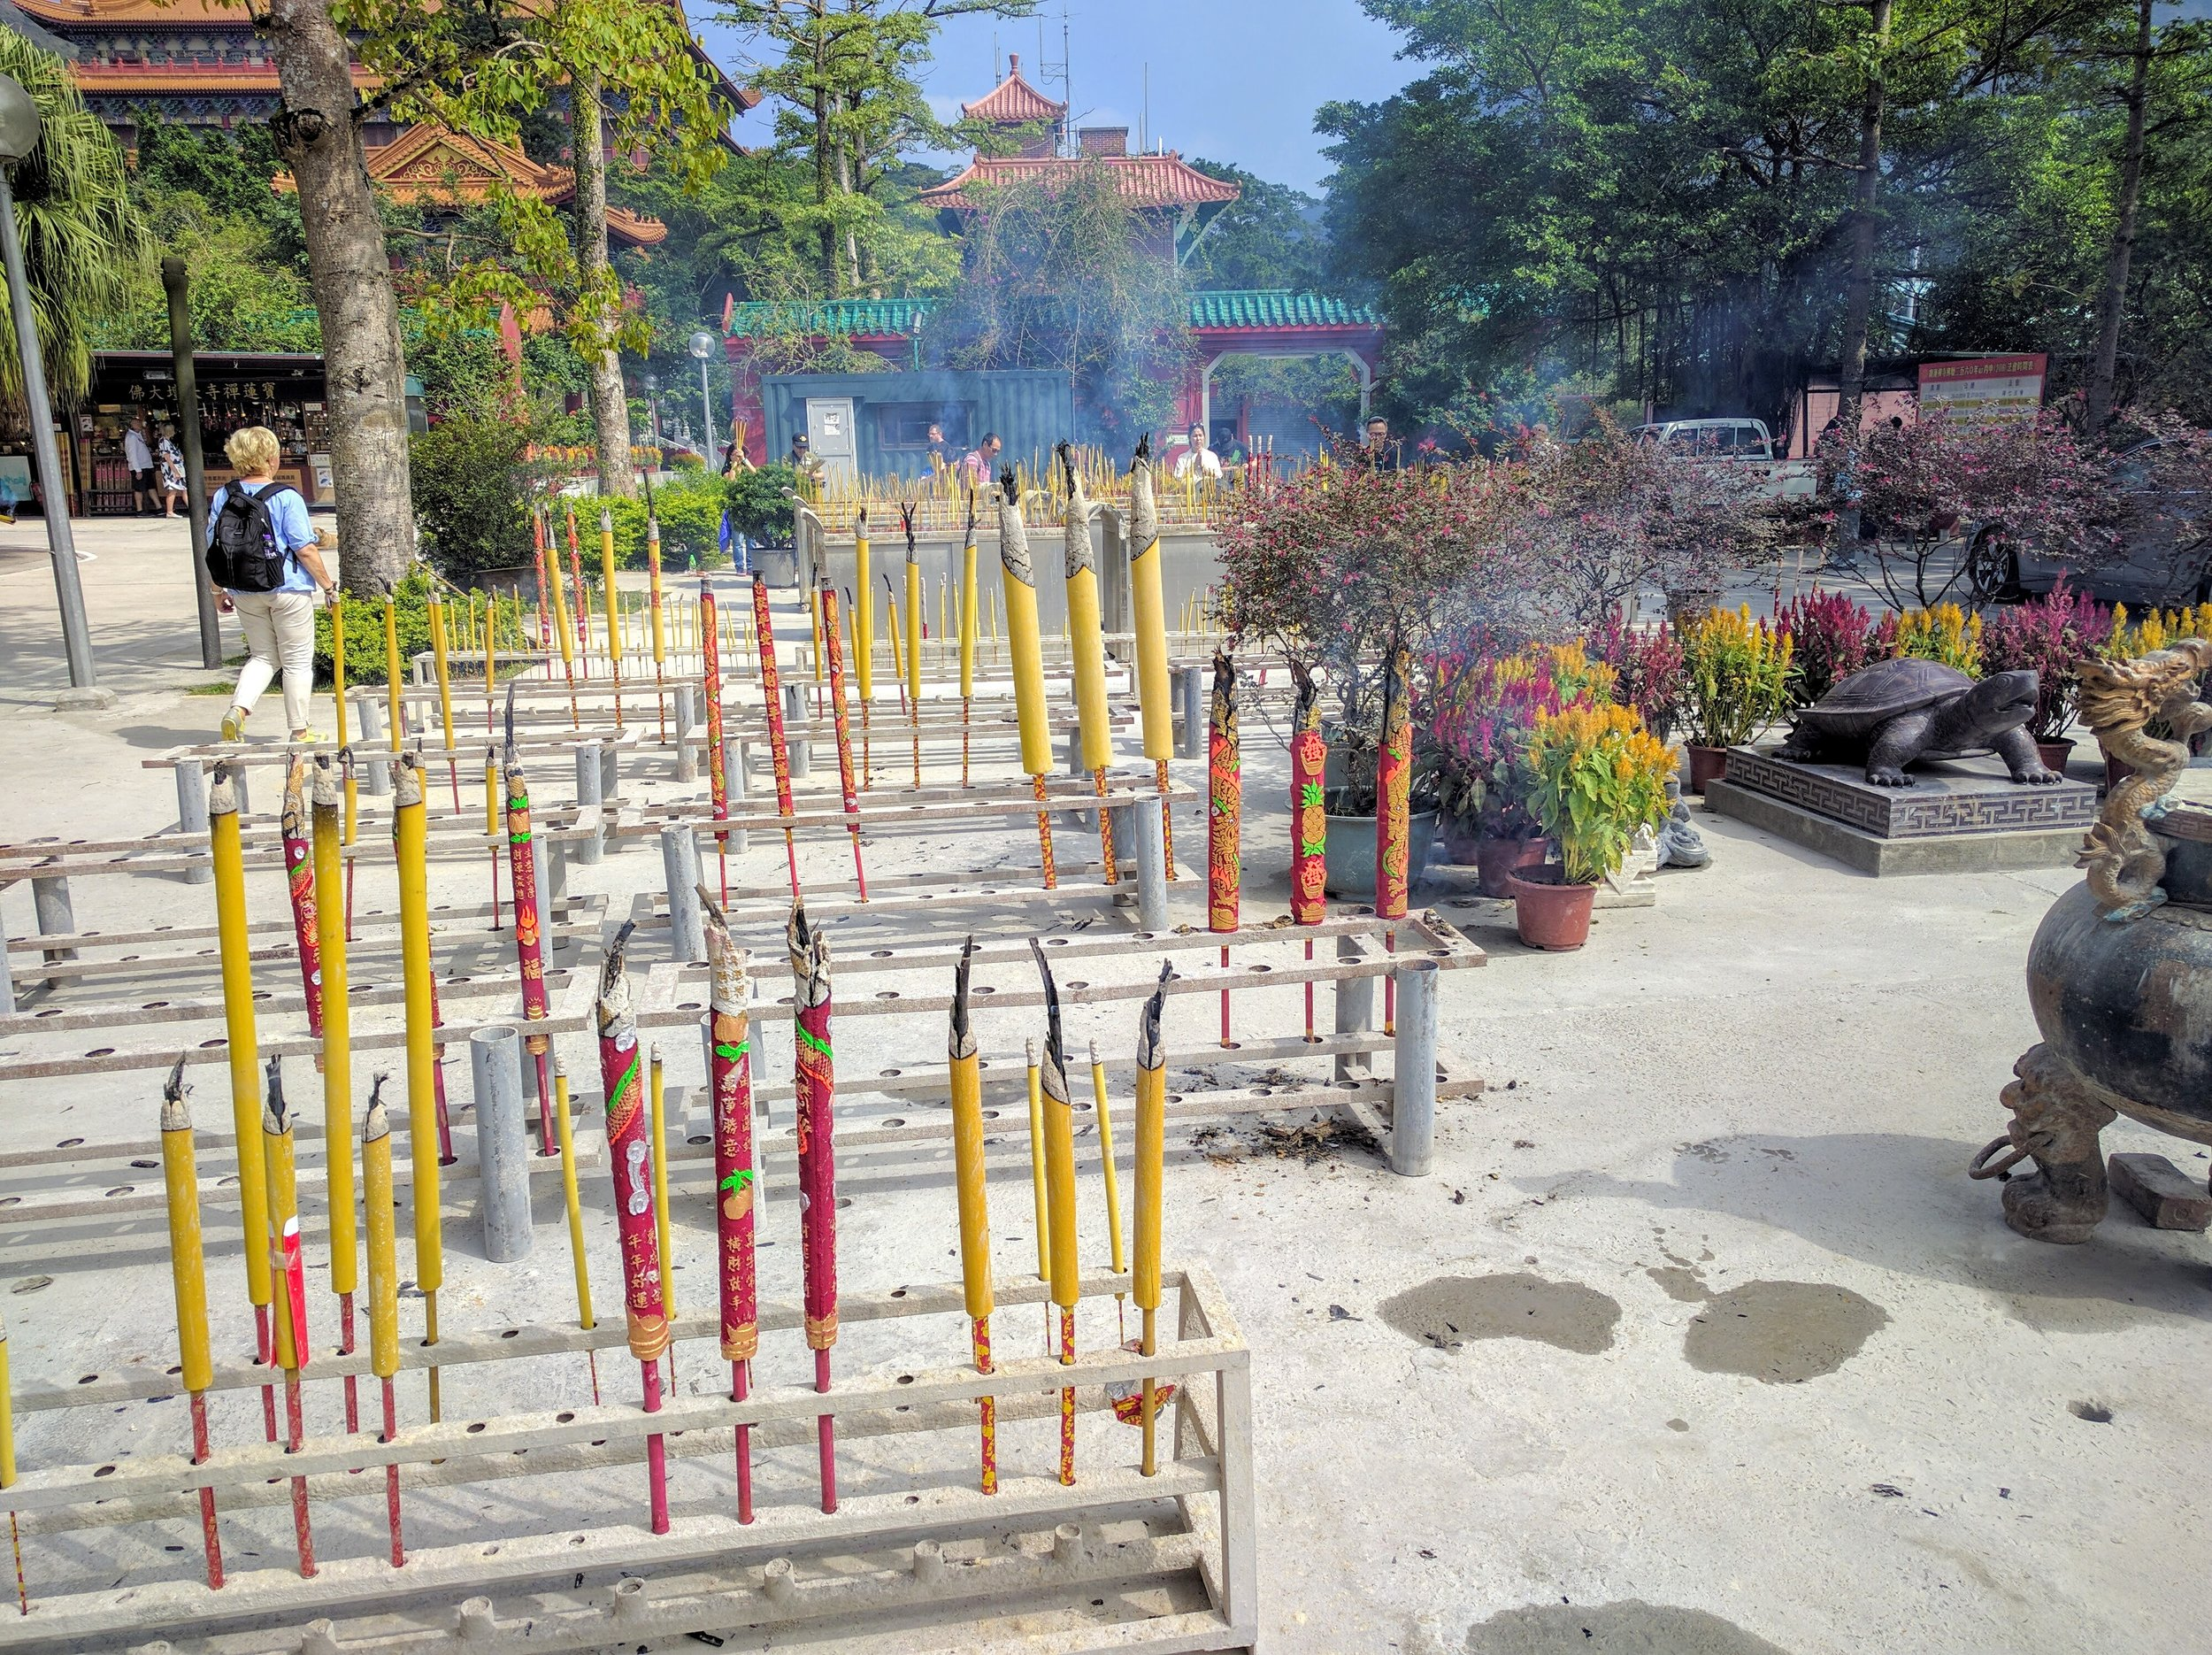 Making wishes with large bundles of burning incense at Po Lin Monastery // Hong Kong